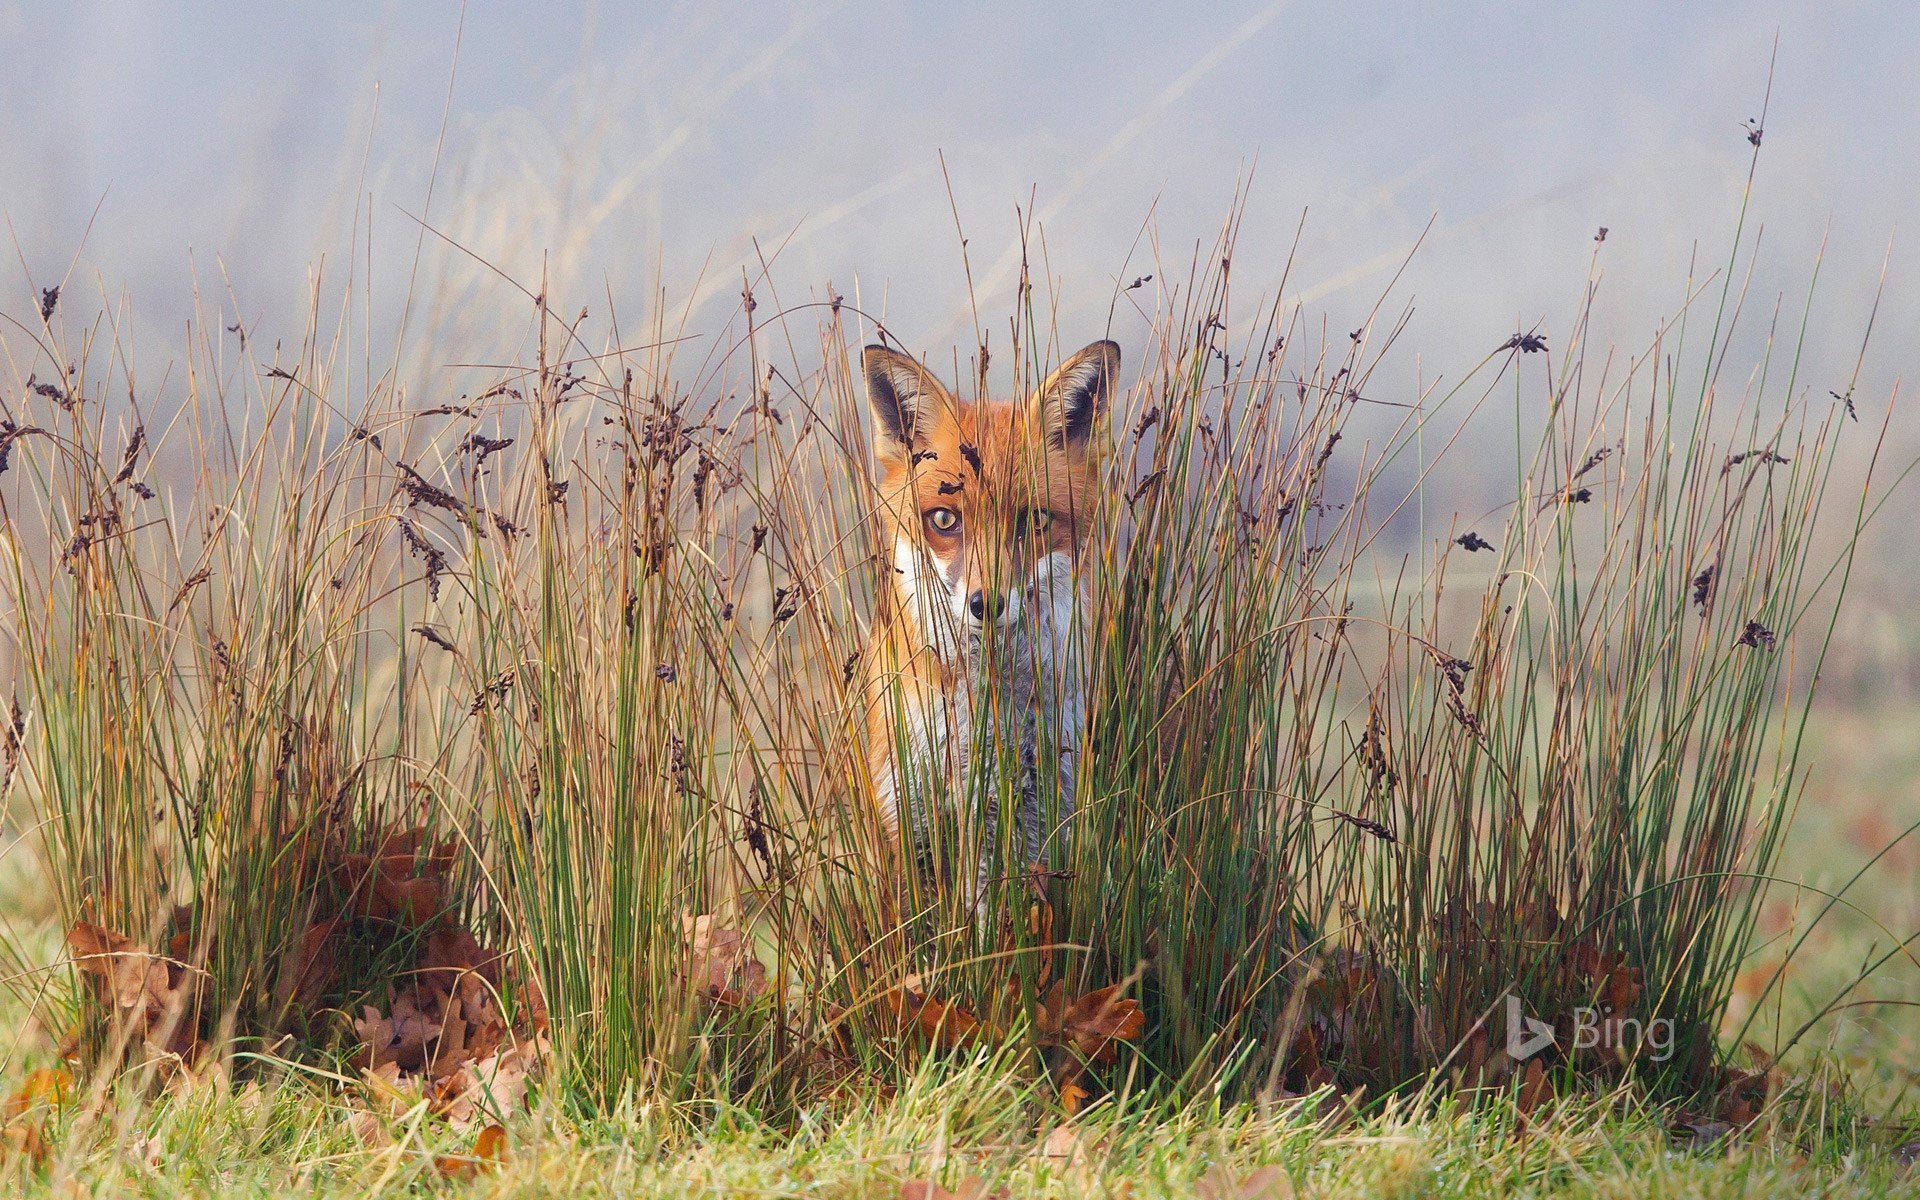 A fox in the grass (© Frederic Desmette/Minden Pictures)